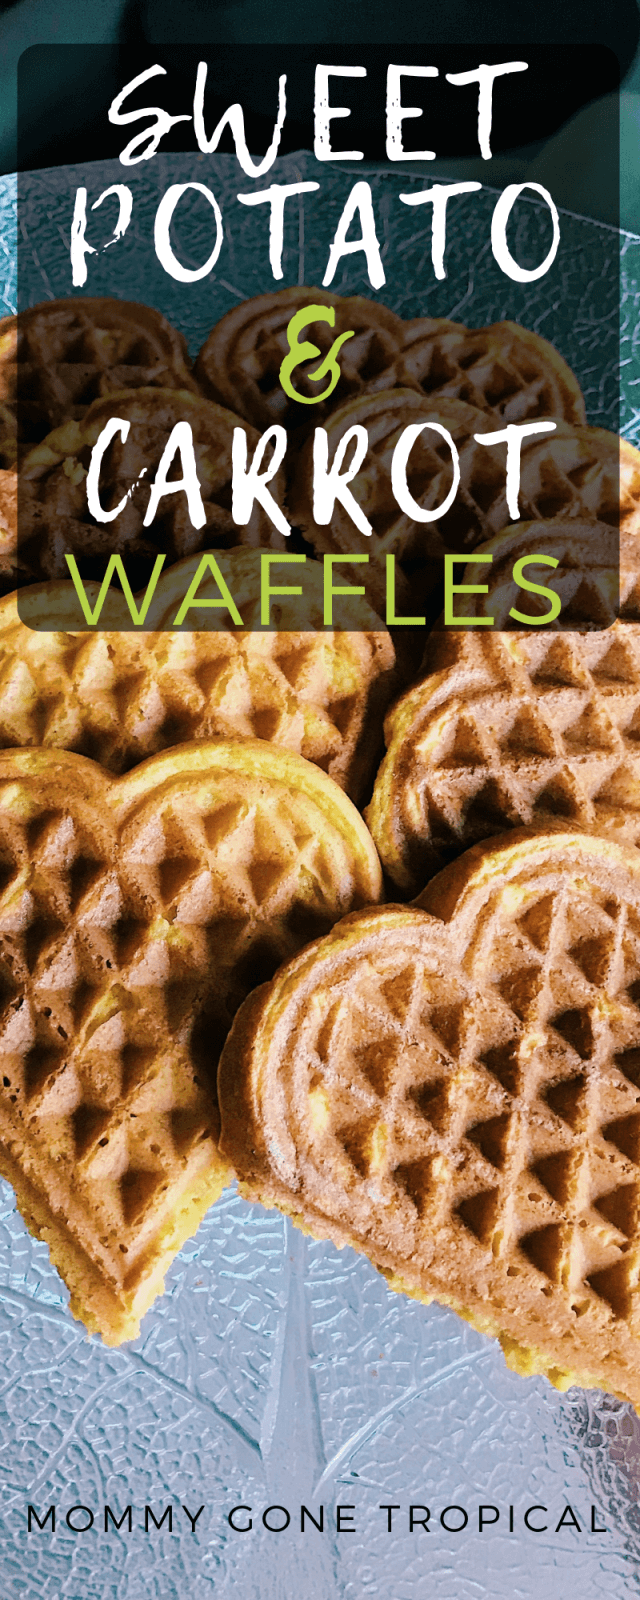 Sweet Potato Carrot Waffles recipe